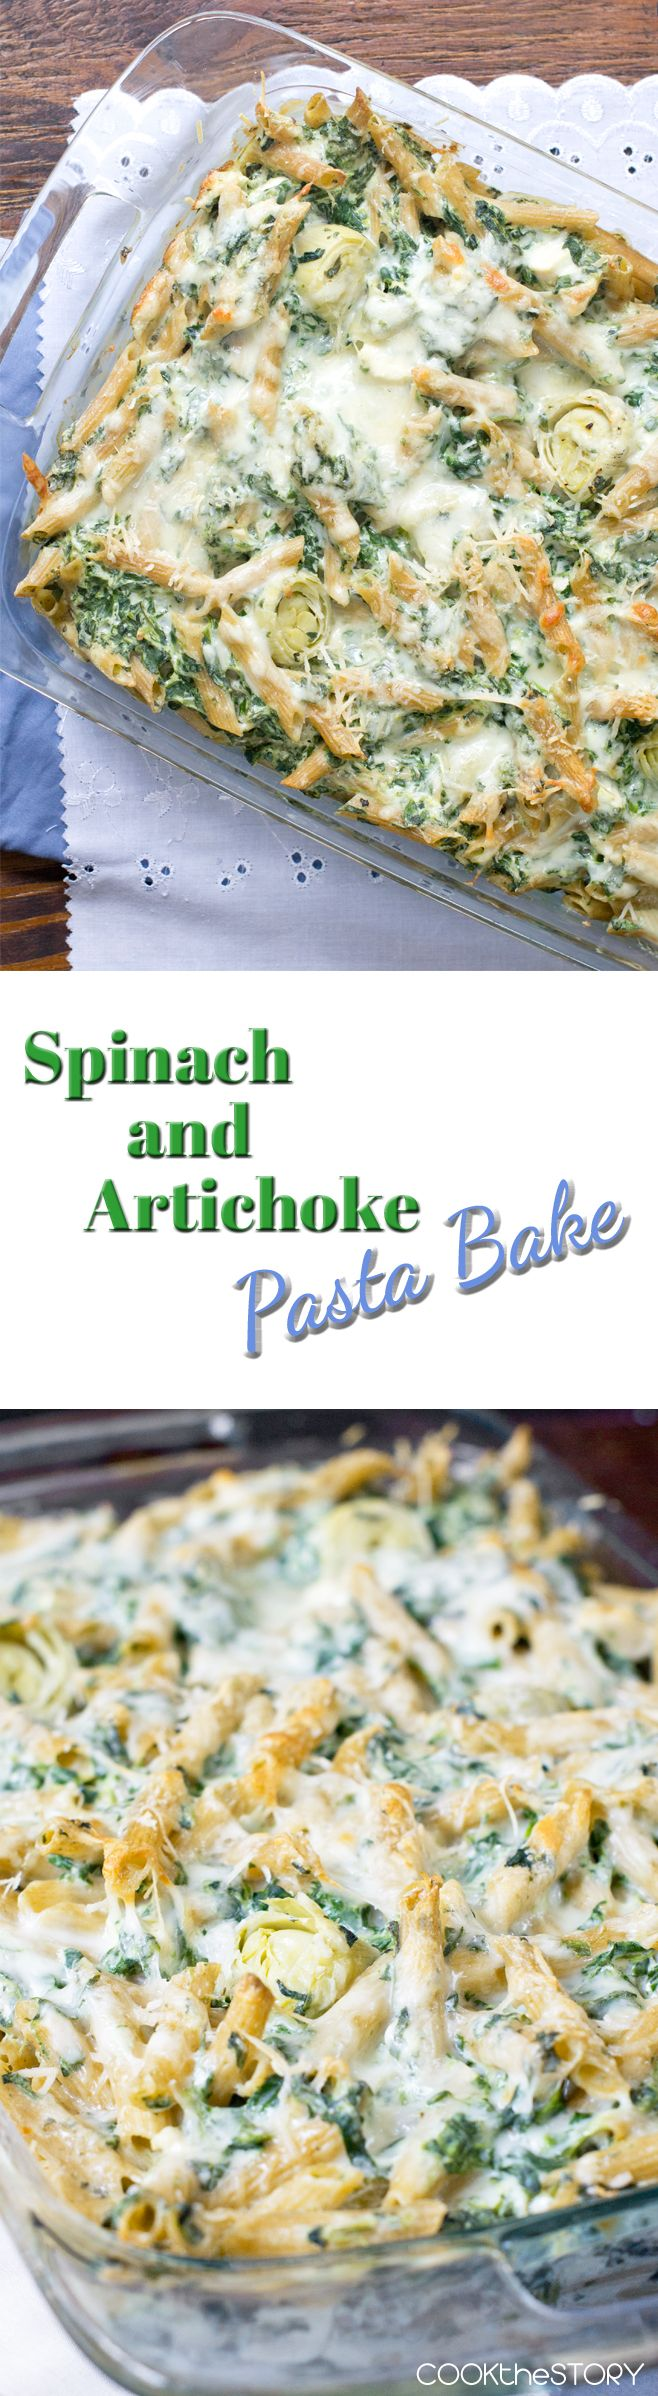 Spinach and Artichoke Baked Pasta http://www.cookthestory.com/2015/10/19/spinach-and-artichoke-pasta-bake/